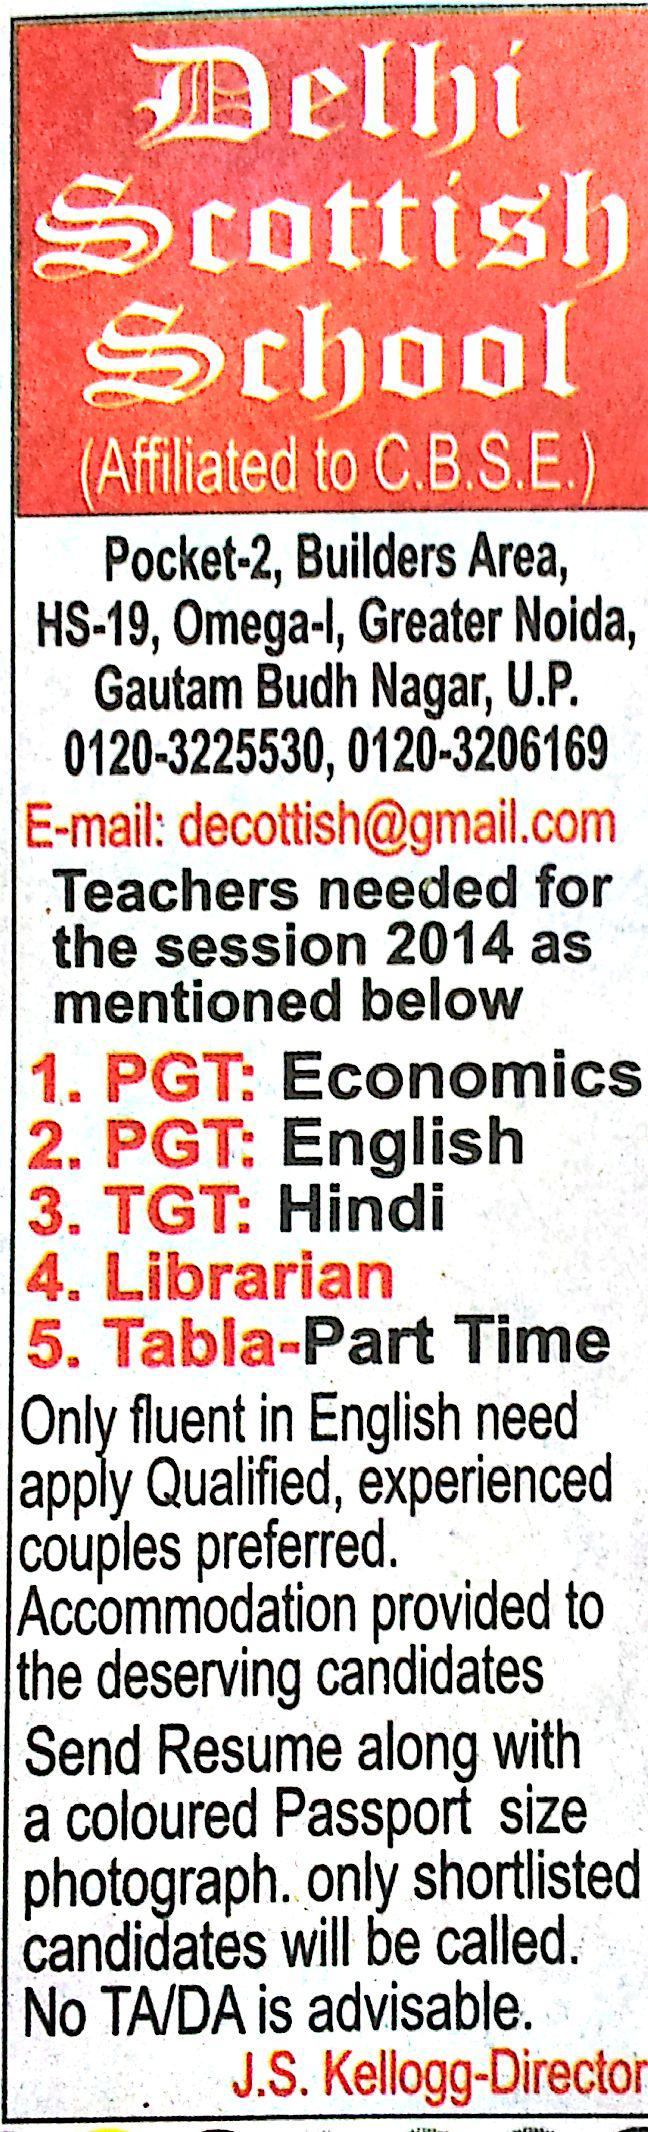 Vacancy for Librarian at Delhi Scottish School, Noida, U.P.